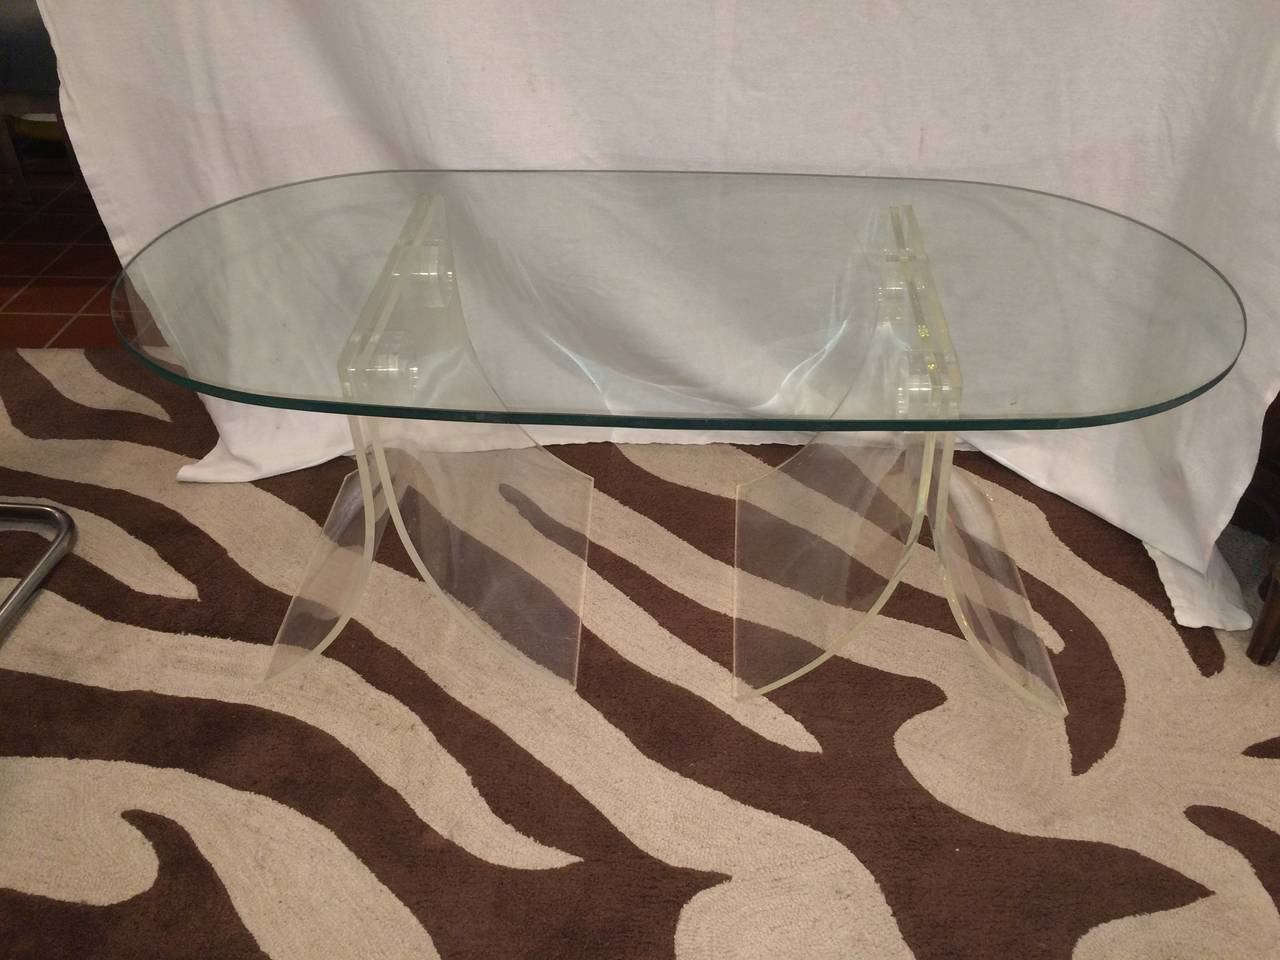 Lucite and glass coffee table. The glass top is 1/2 inch thick and the lucite bases can be placed in several different configurations. Perfect for small spaces with its airy open feel. Also easy to move from one room to another if needed.